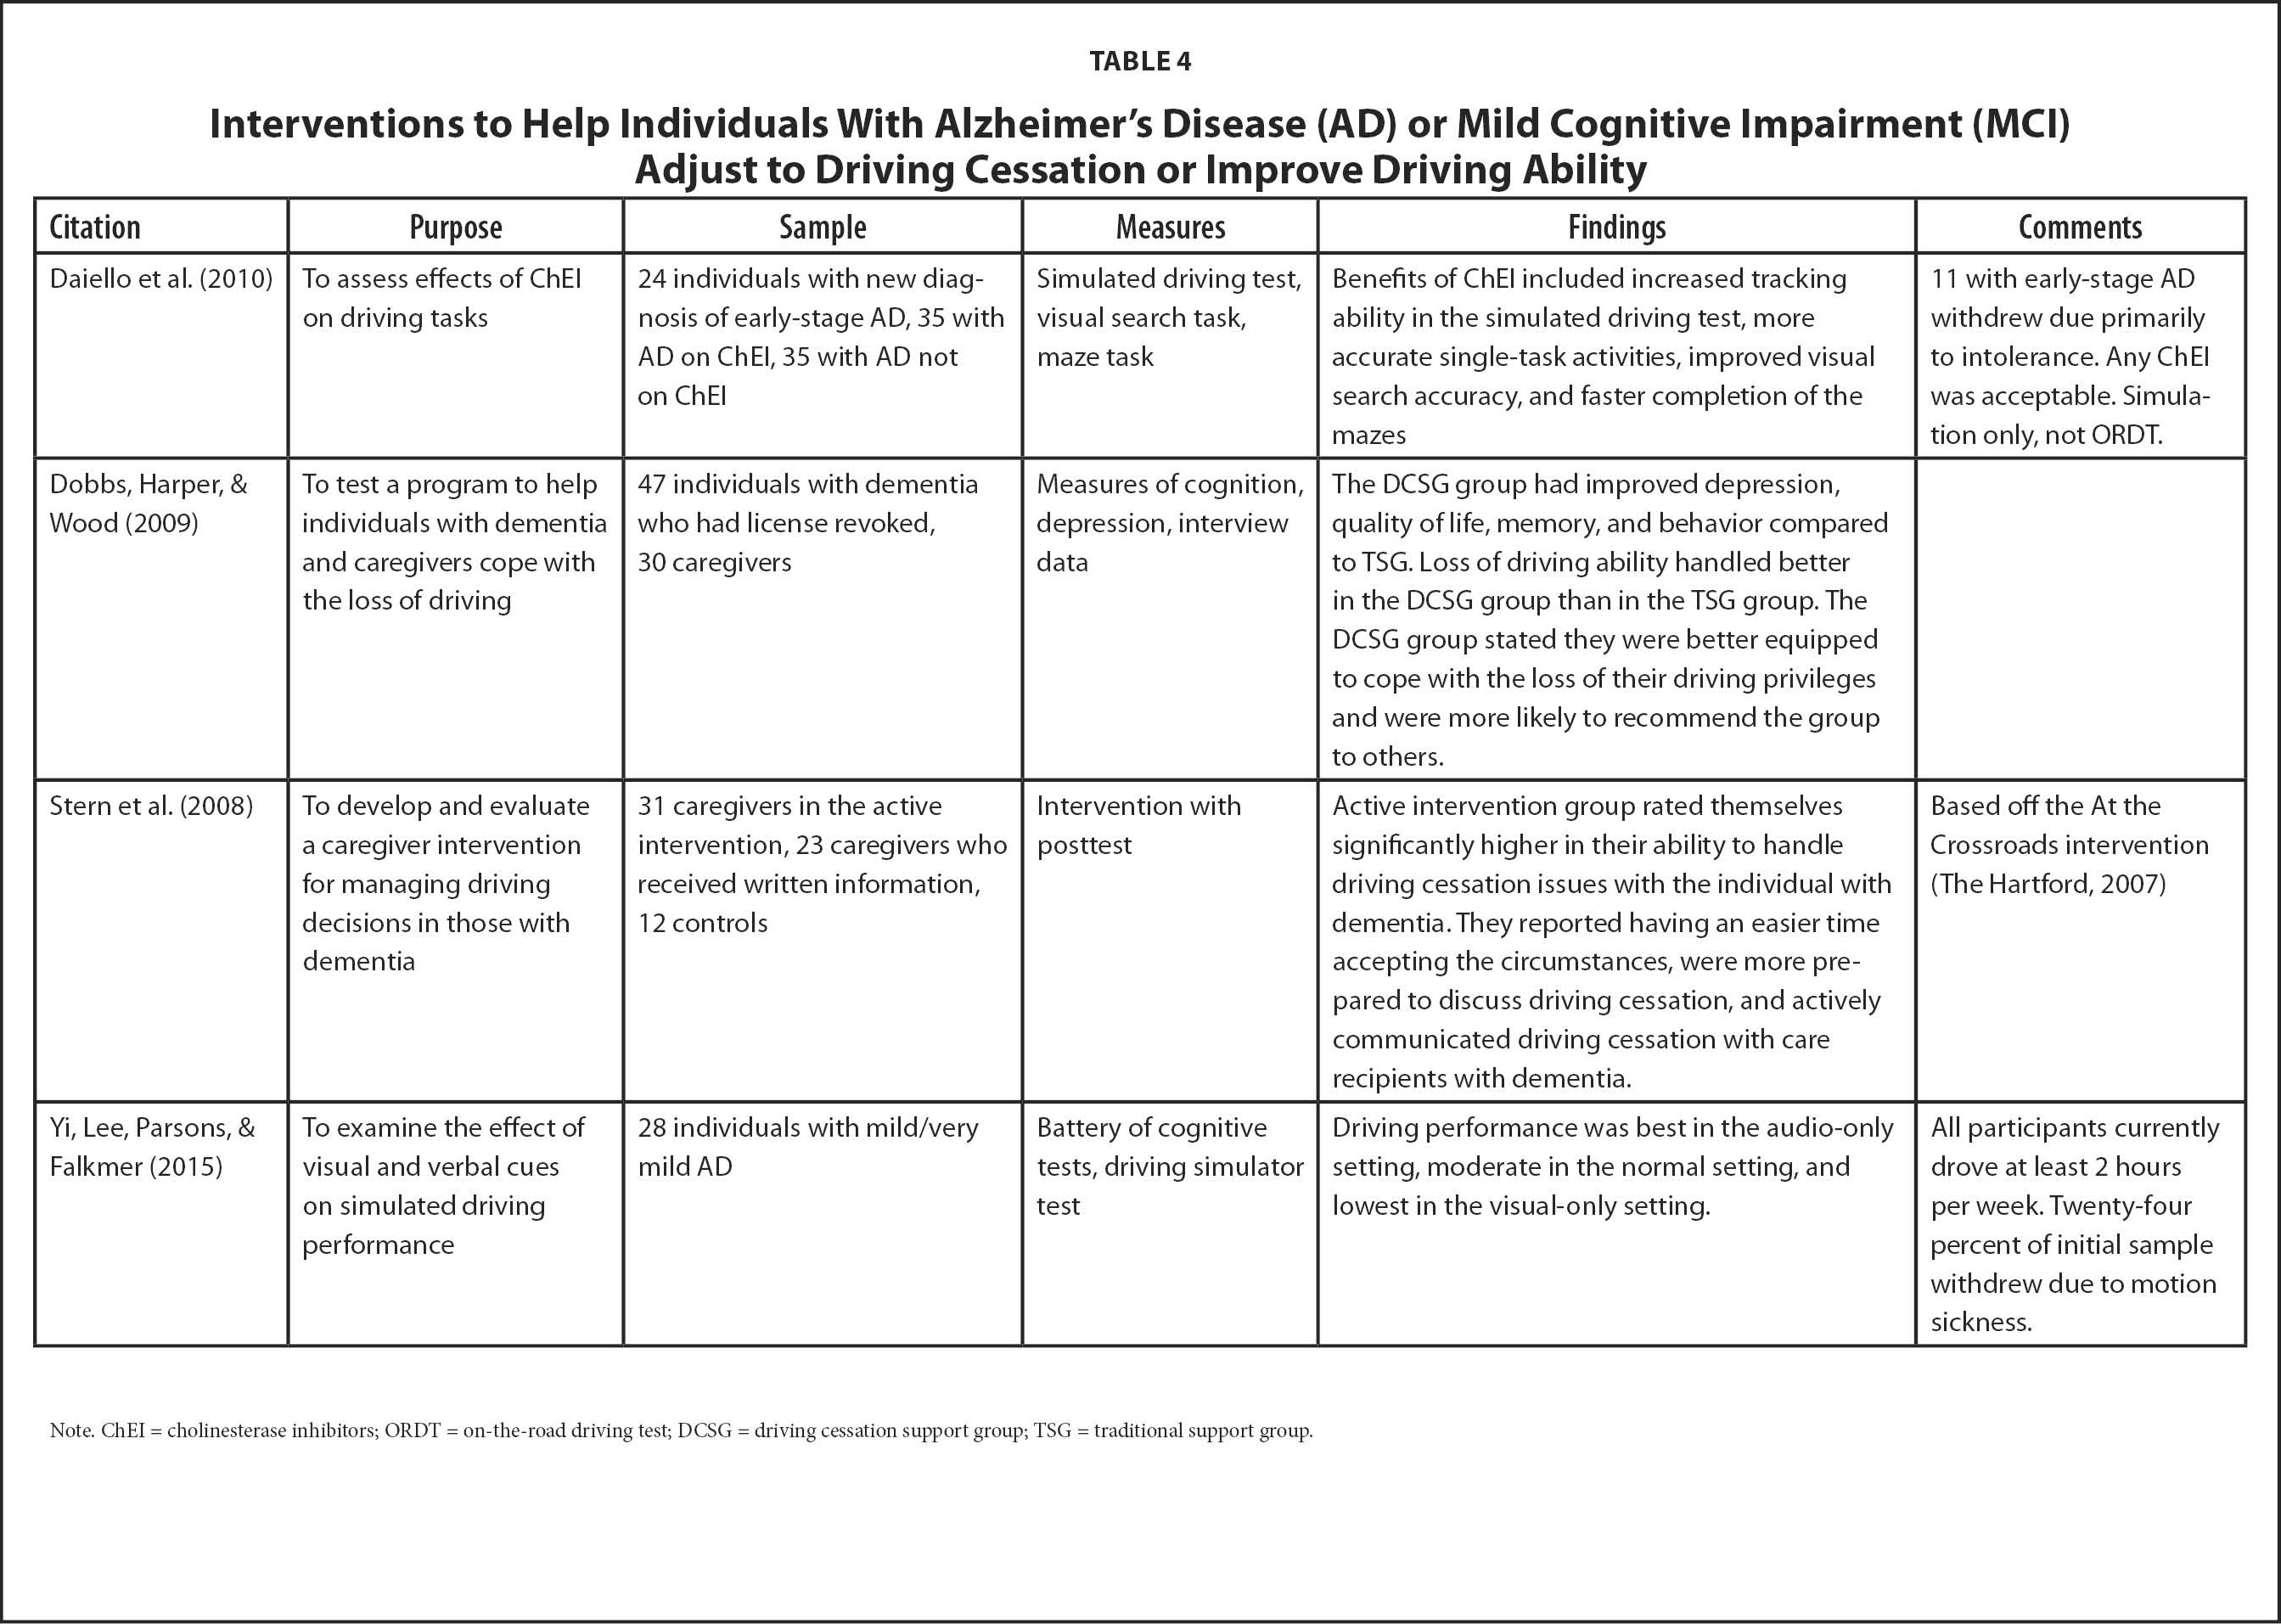 Interventions to Help Individuals With Alzheimer's Disease (AD) or Mild Cognitive Impairment (MCI) Adjust to Driving Cessation or Improve Driving Ability